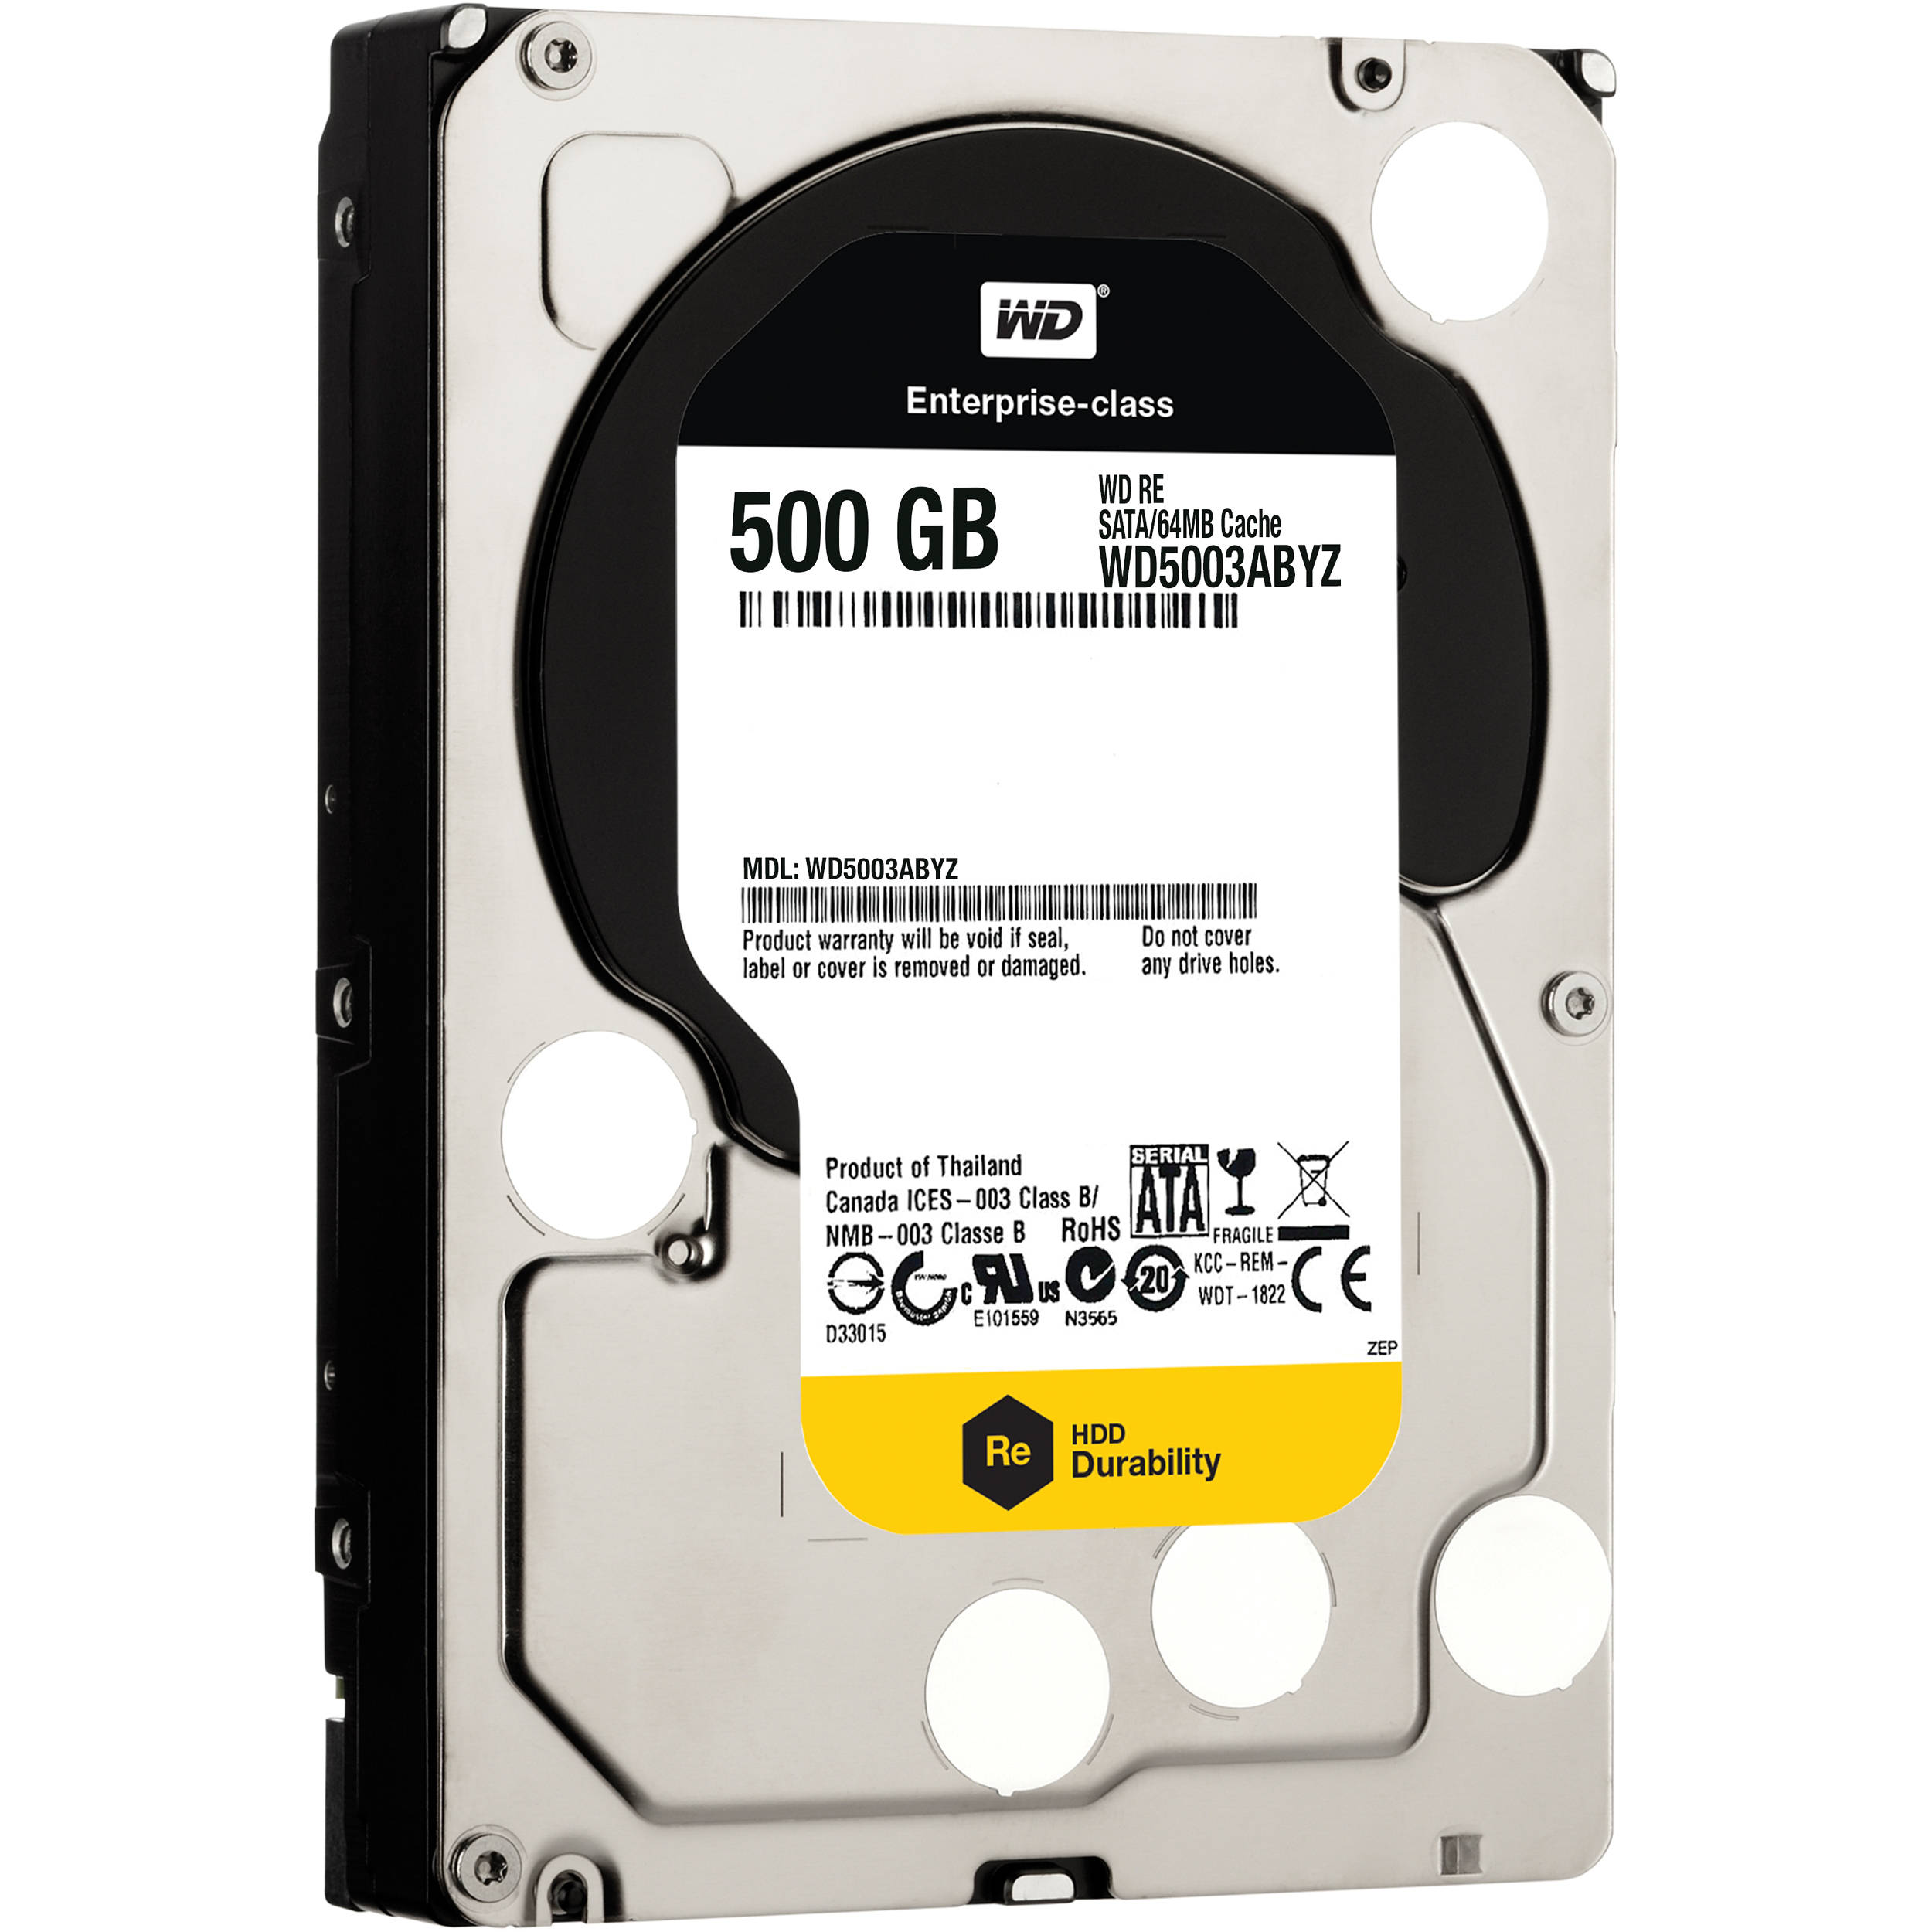 WD 500GB Re Datacenter 7200 Rpm SATA III 35 WD5003ABYZ